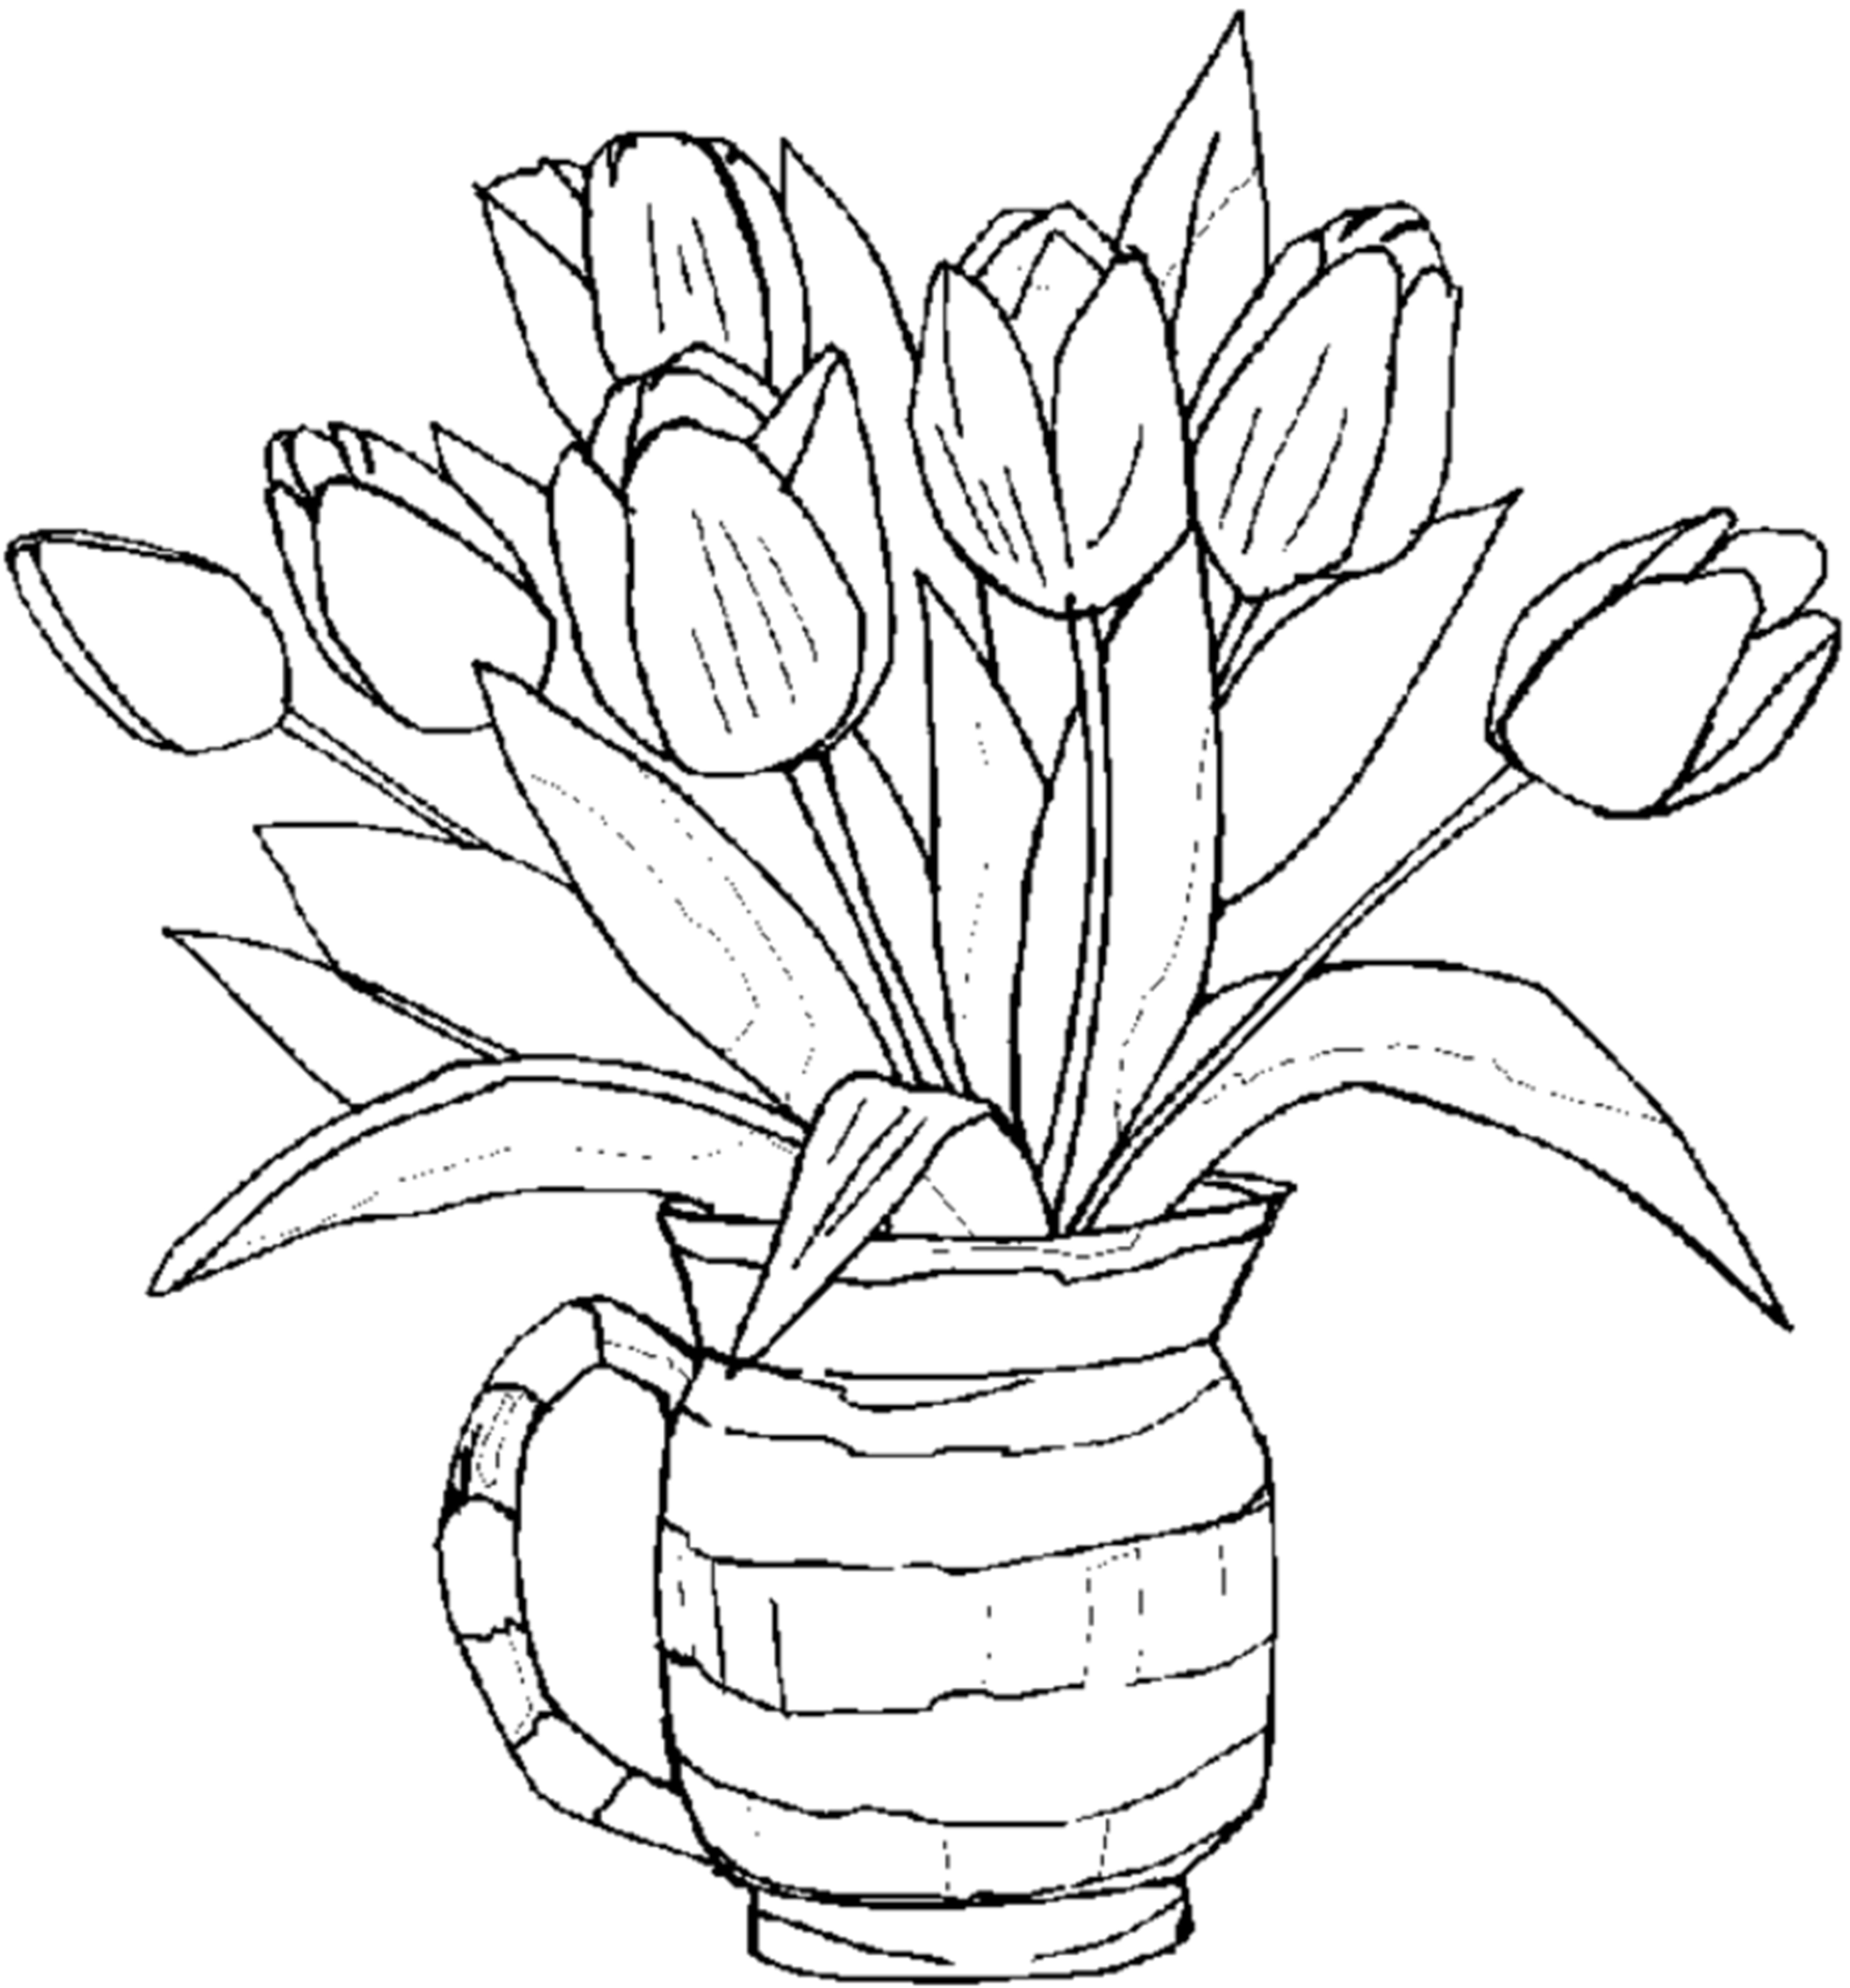 flowers coloring page flower plants in blossom coloring page coloring sky flowers coloring page